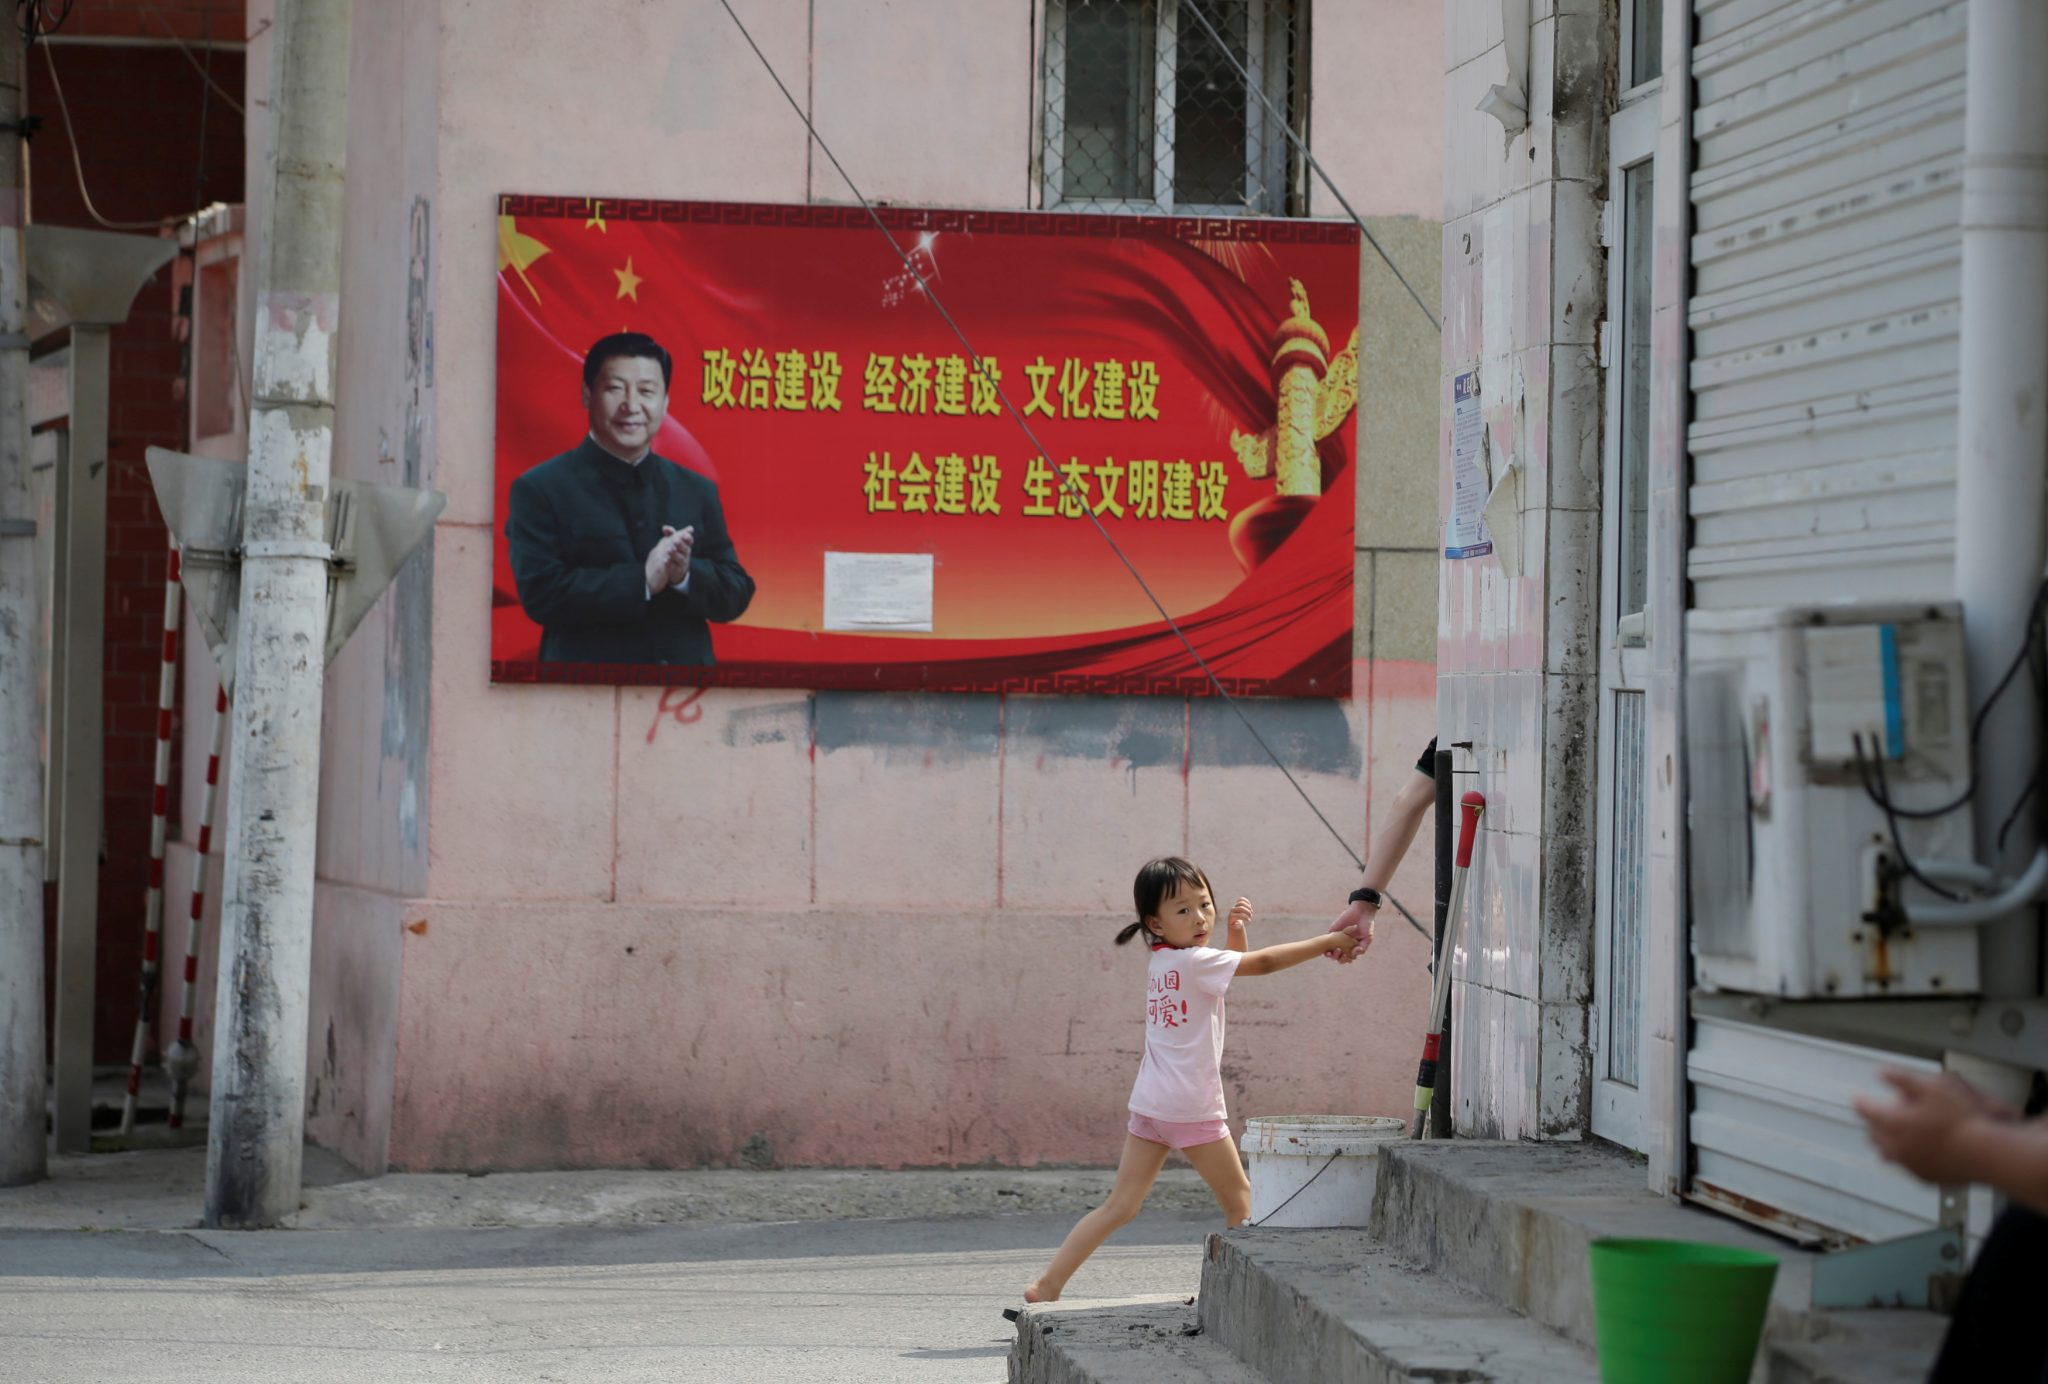 The West is getting China wrong